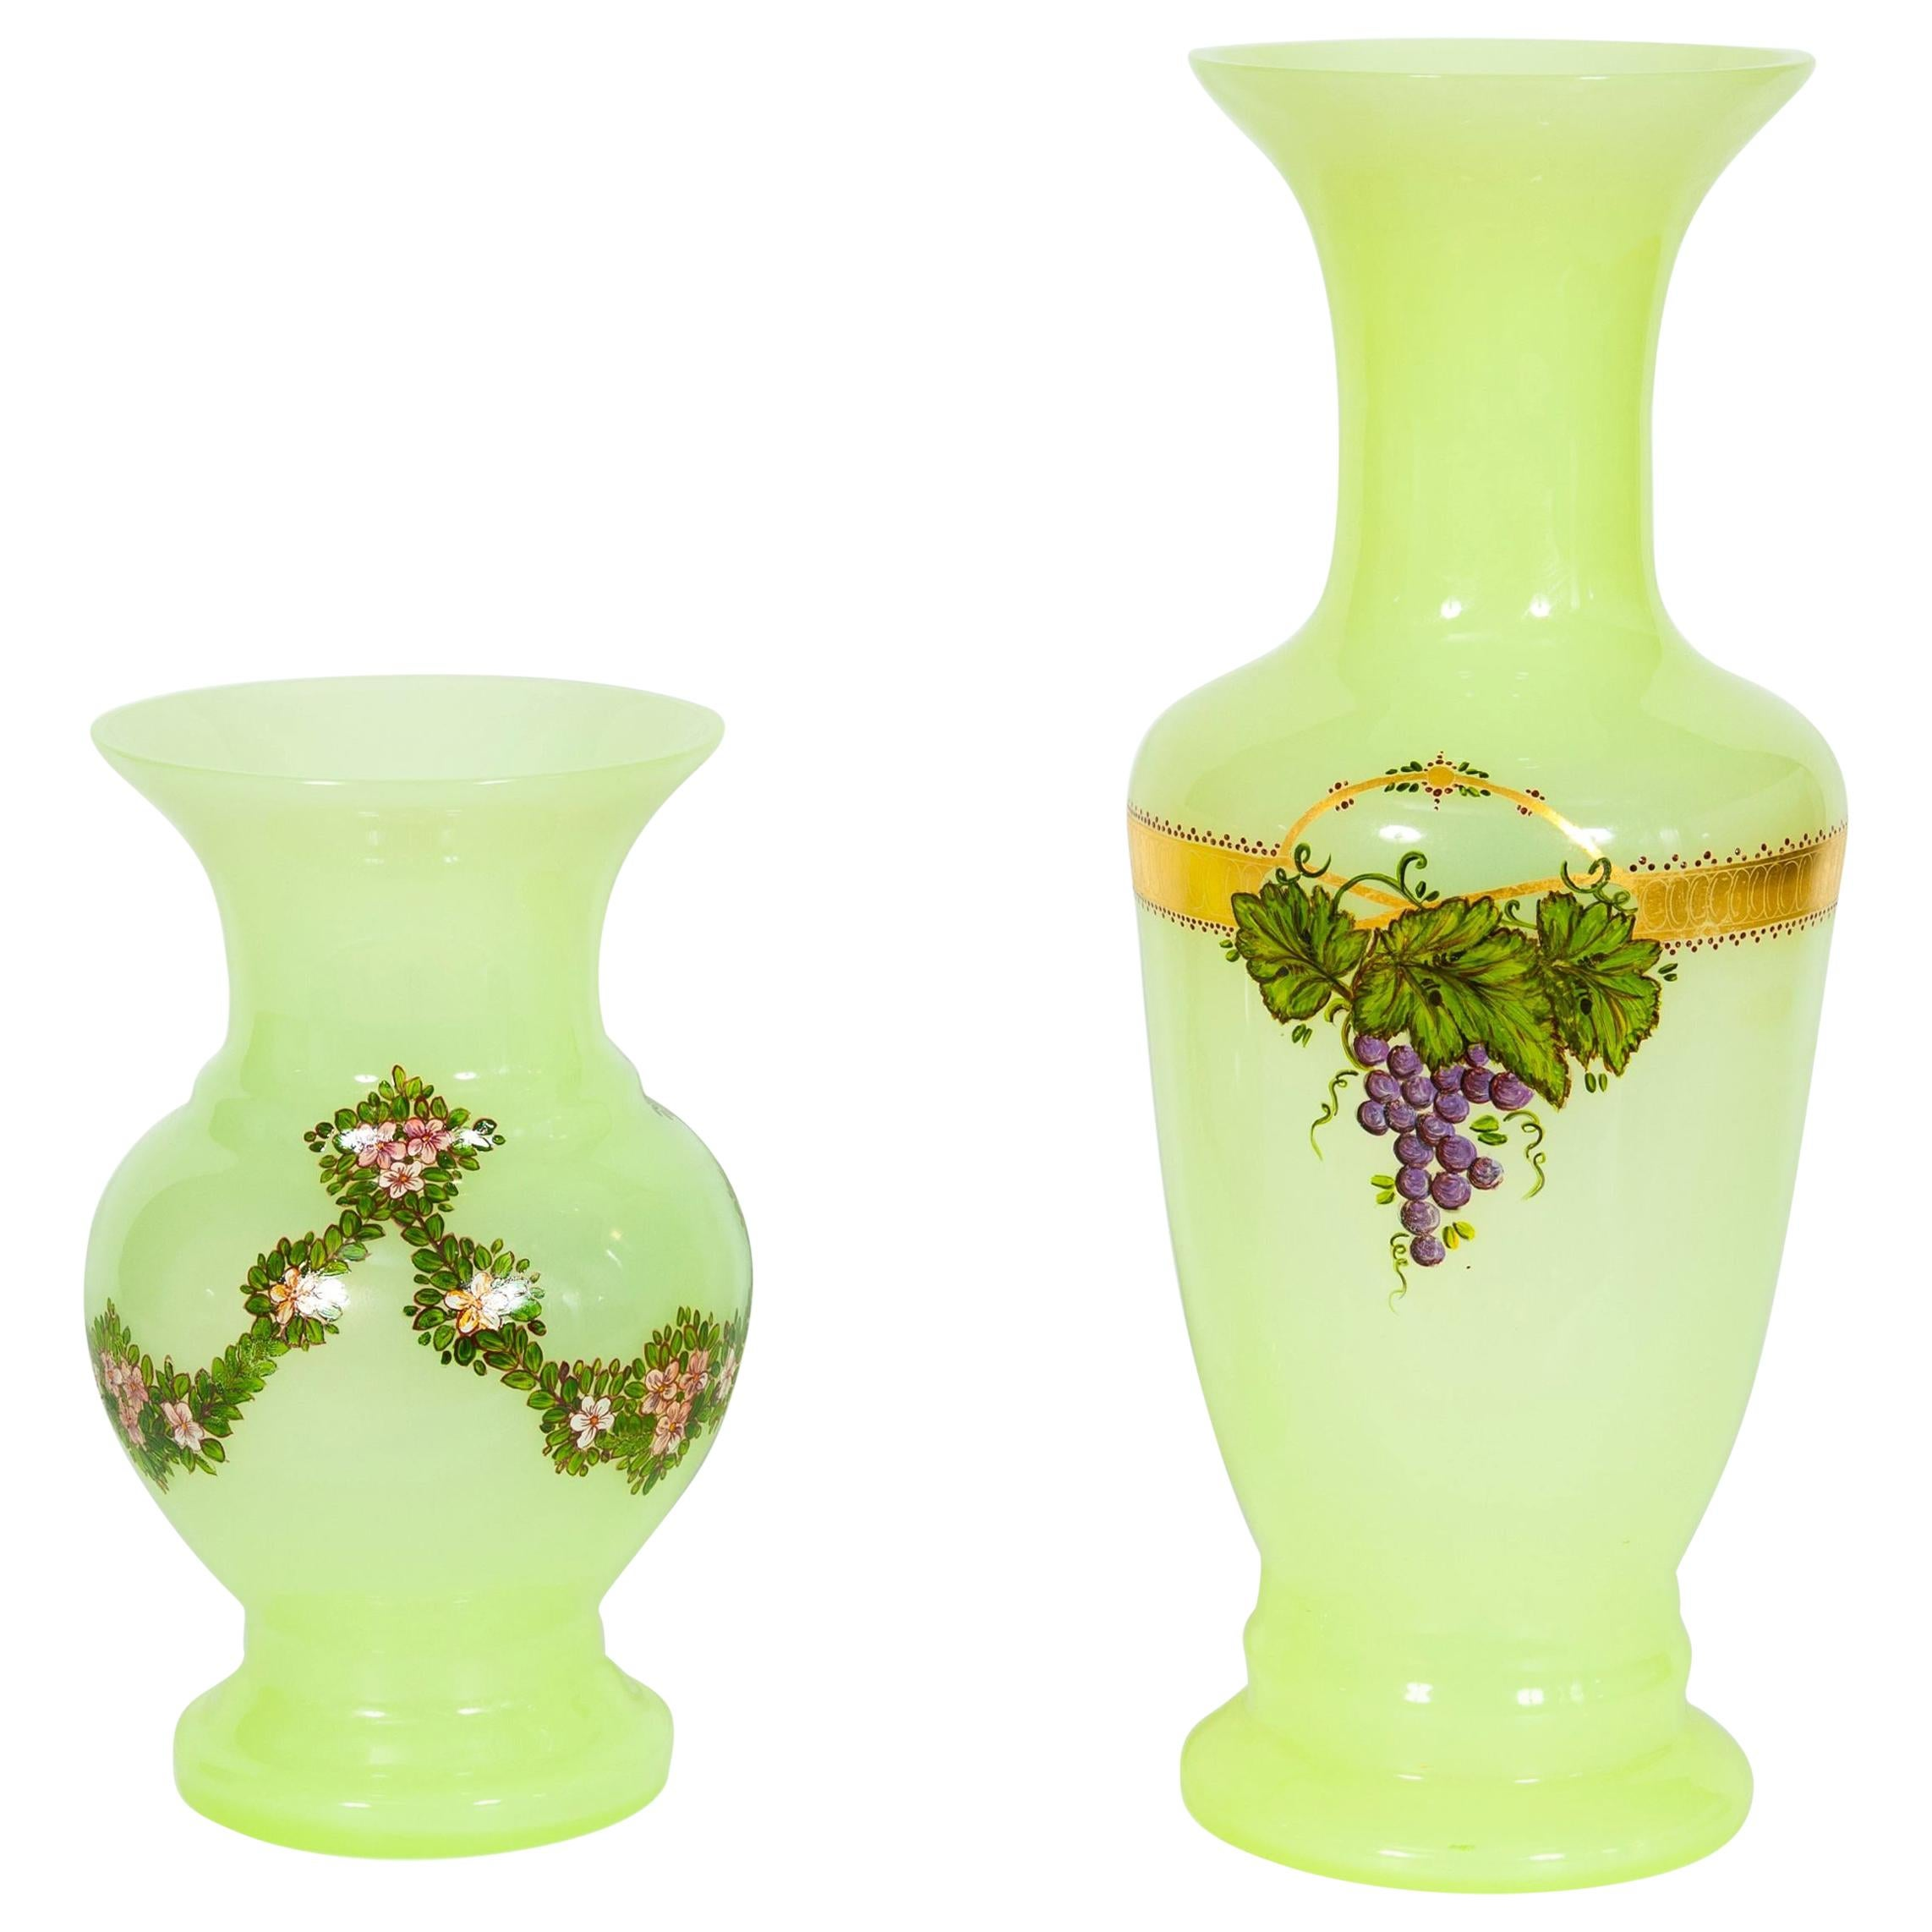 Pair of Fluorescent Yellow Murano Glass Vases Hand Painted and Decorated, 1990s